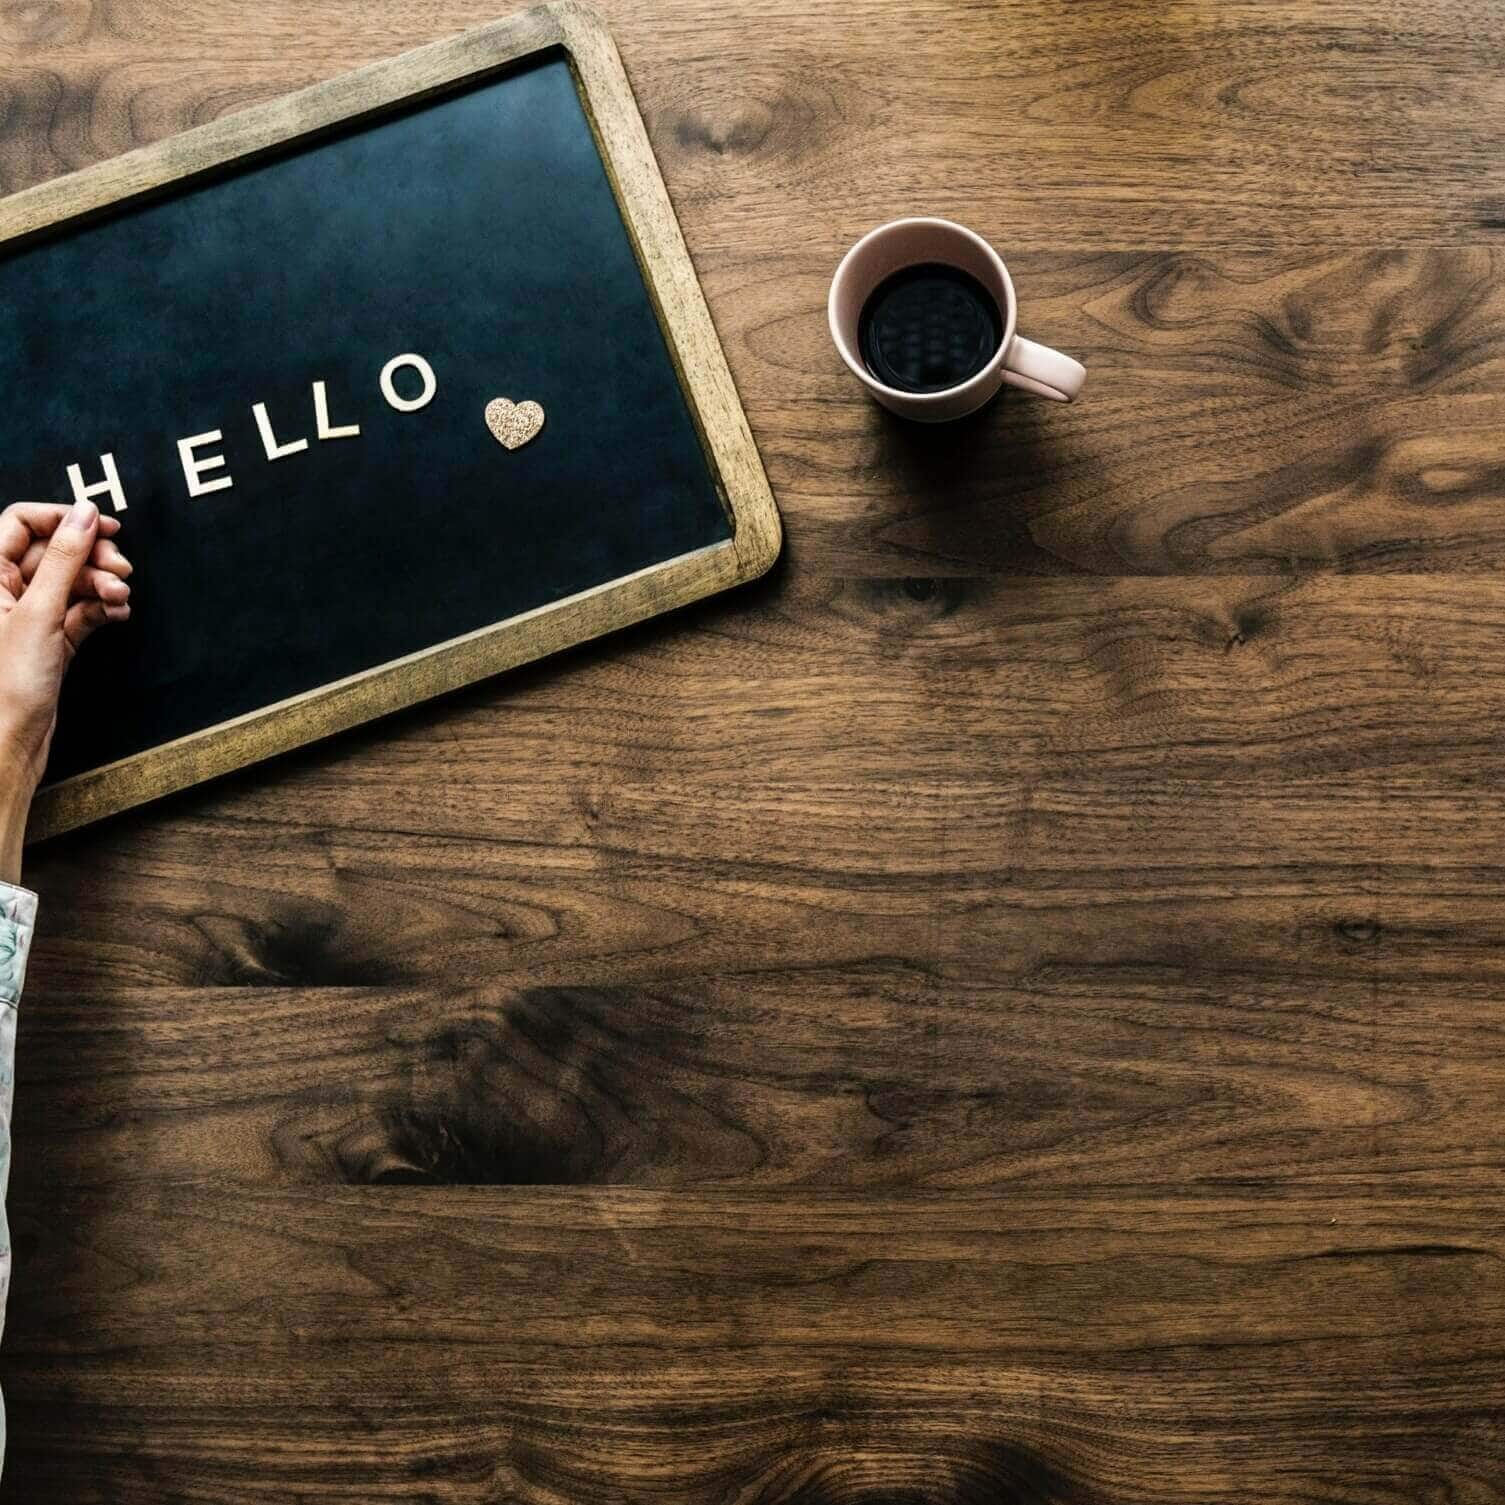 picture of a blackboard with the word hello next to a coffee mug. Picture used as title for blog post